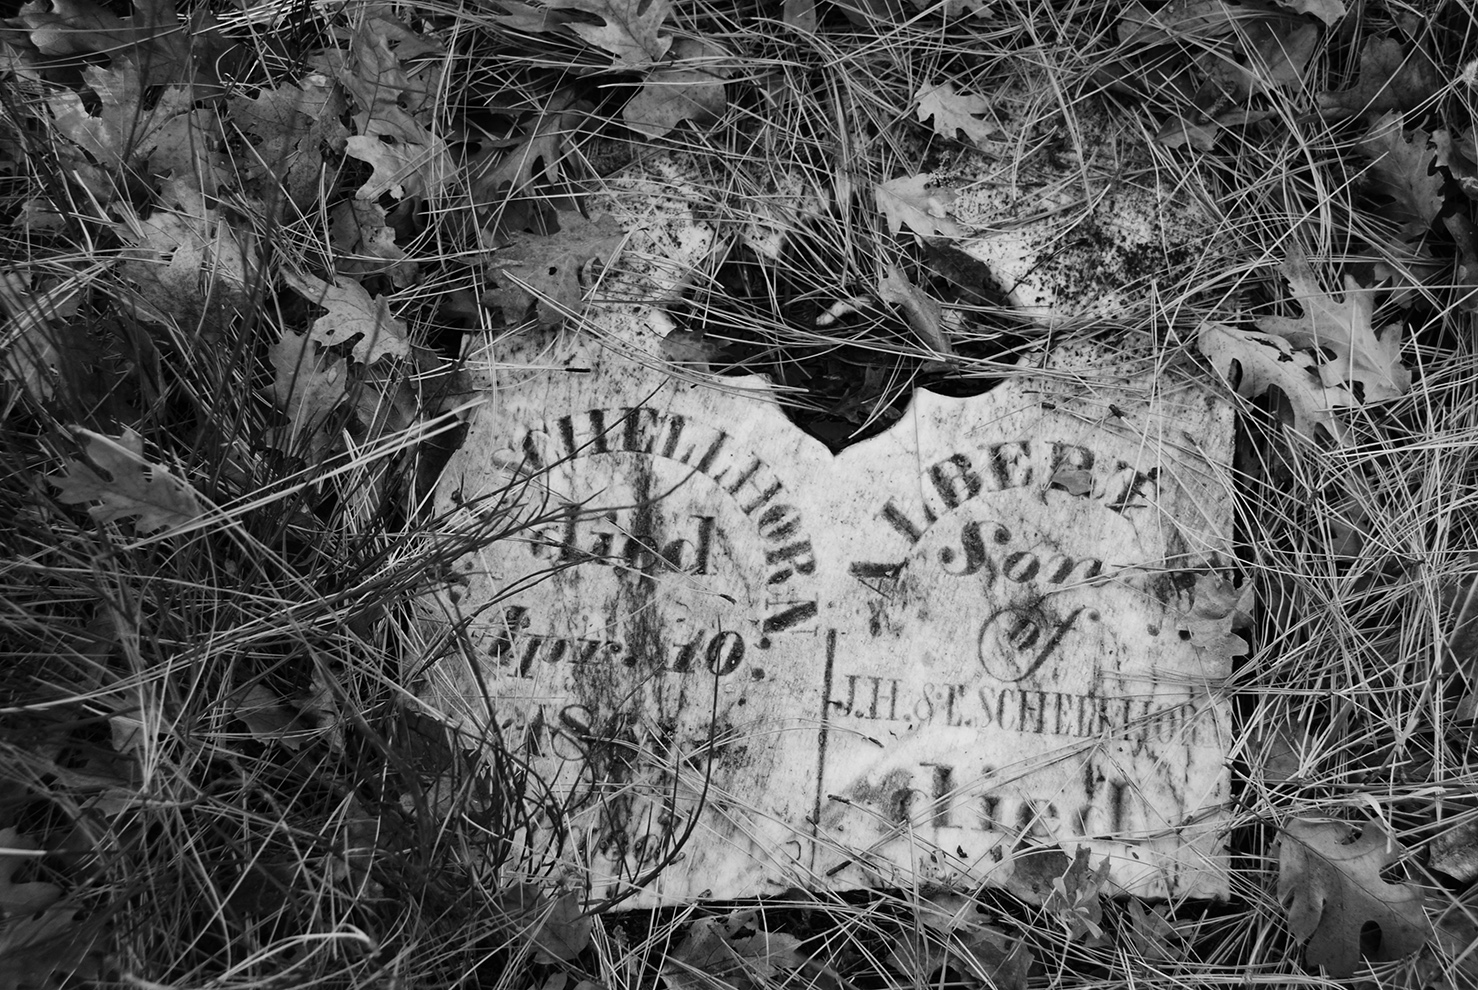 Nevada City Pioneer Cemetery Shellhorn Broken.jpg